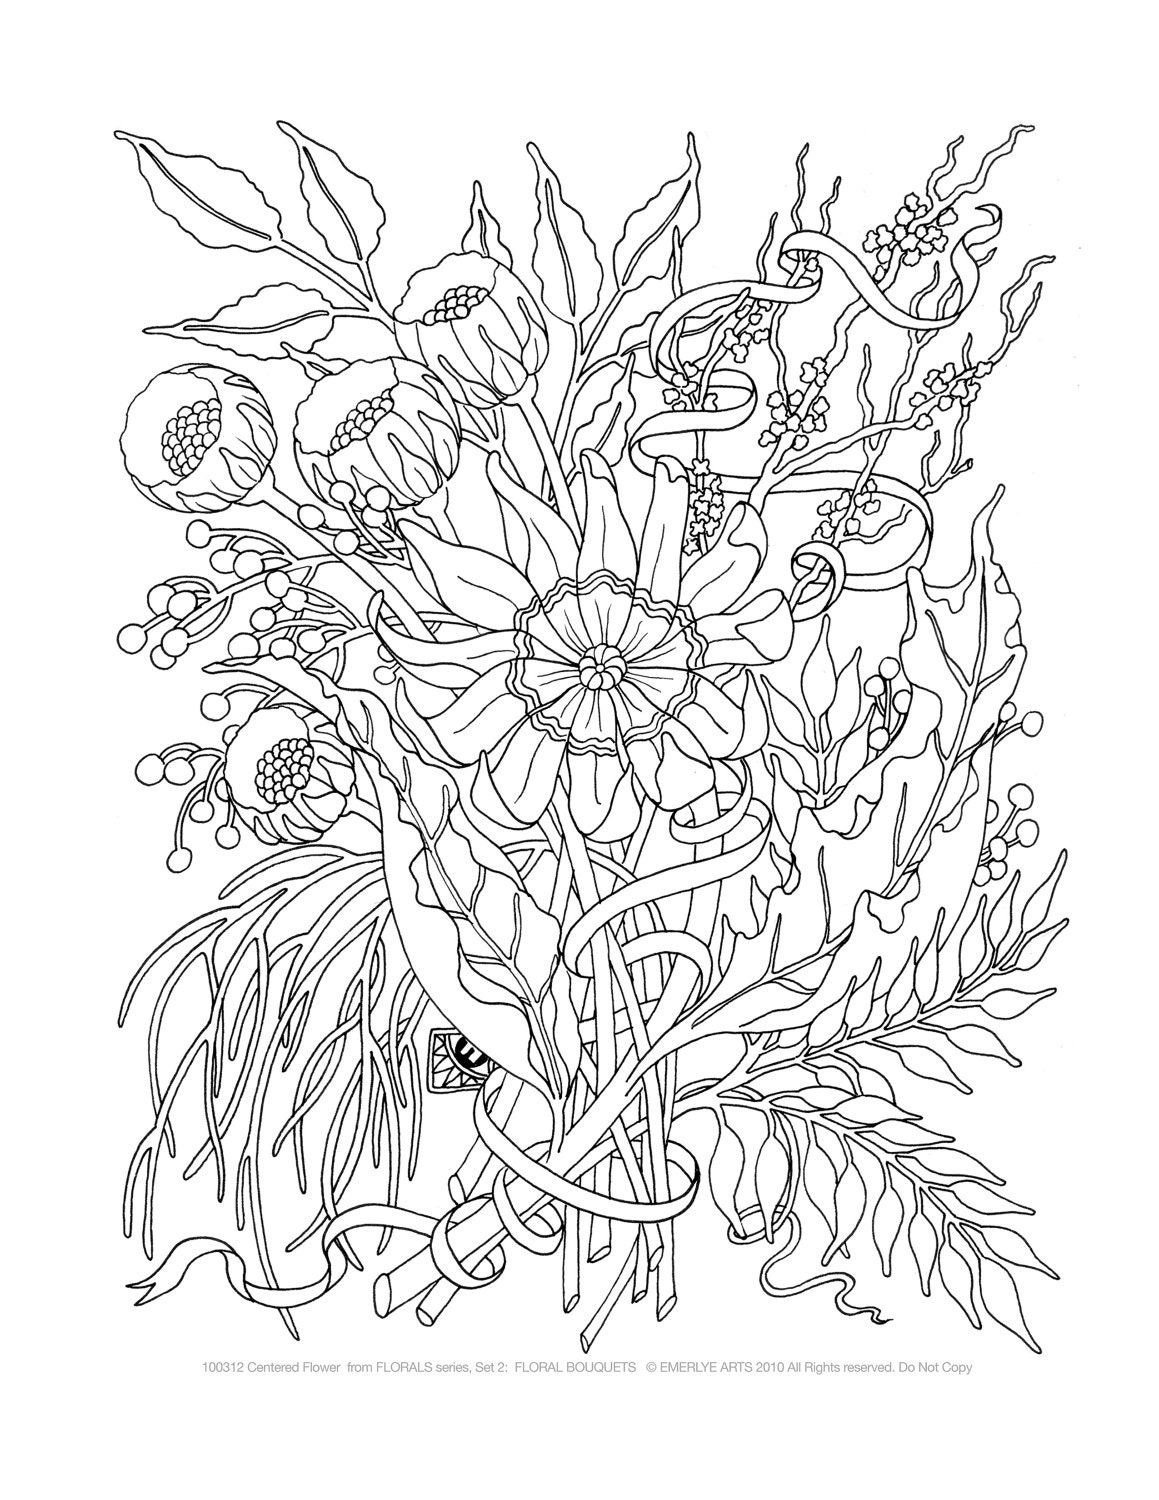 Coloring pictures for adults - 48 Best Images About Adult Coloring Pages On Pinterest Coloring Adult Coloring Pages And Colouring Pages